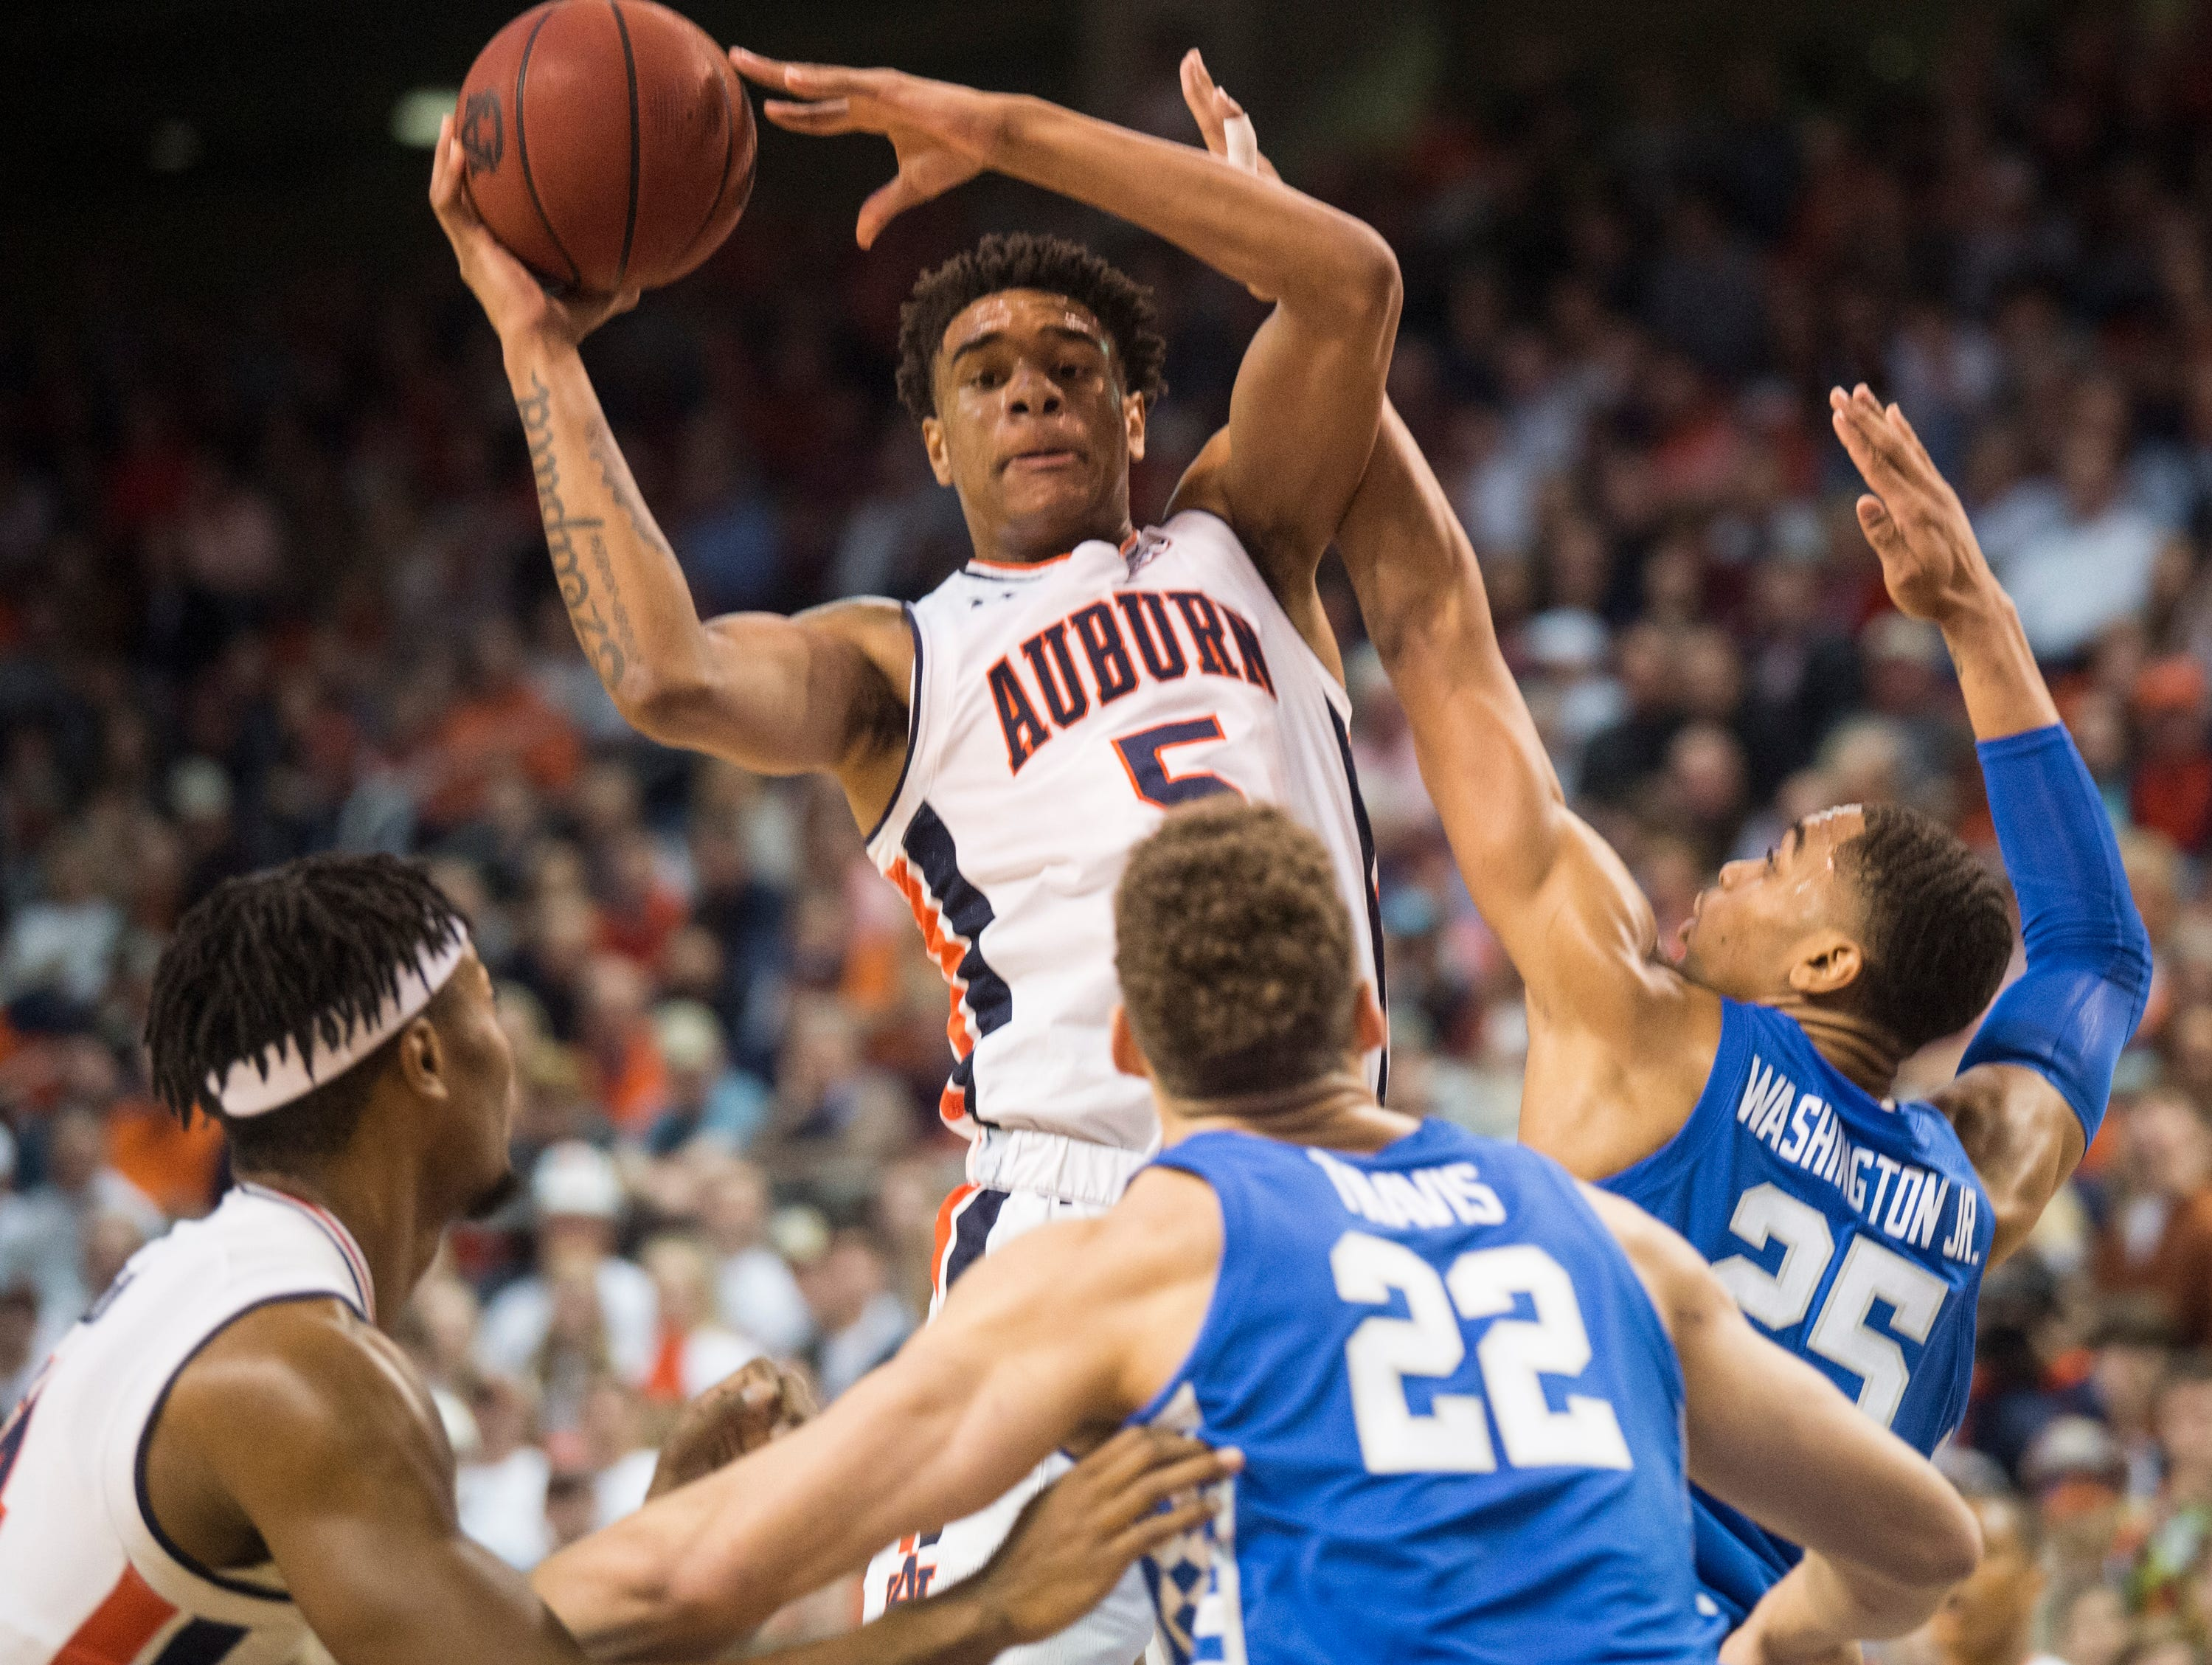 Auburn forward Chuma Okeke (5) looks to pass out of a layup at Auburn Arena in Auburn, Ala., on Saturday, Jan. 19, 2019. Kentucky leads Auburn 35-27 at halftime.